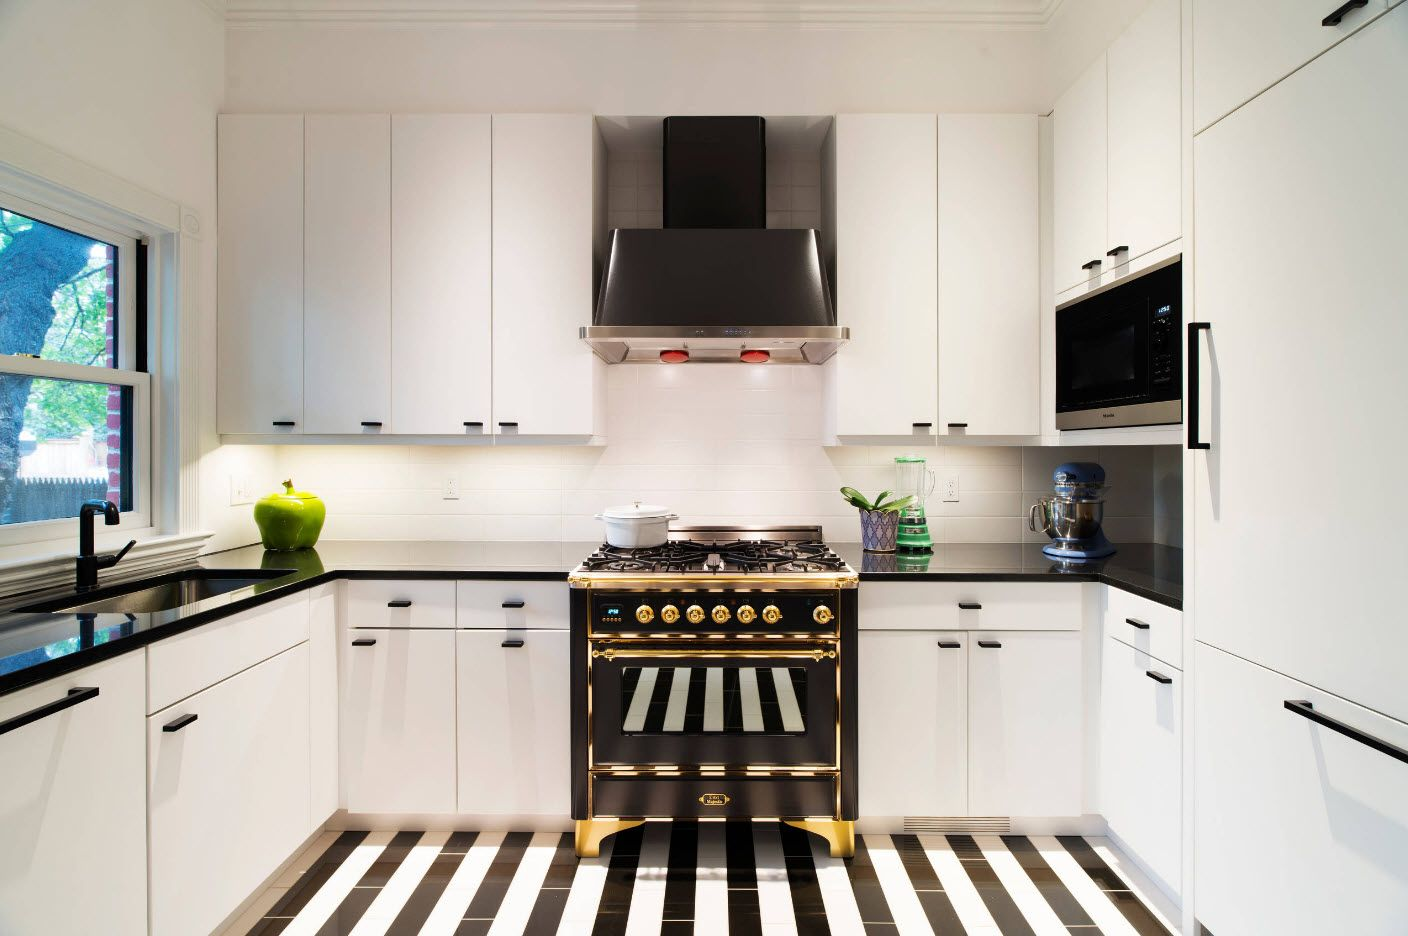 Black and white striped tiled floor at the hi-tech cottage kitchen